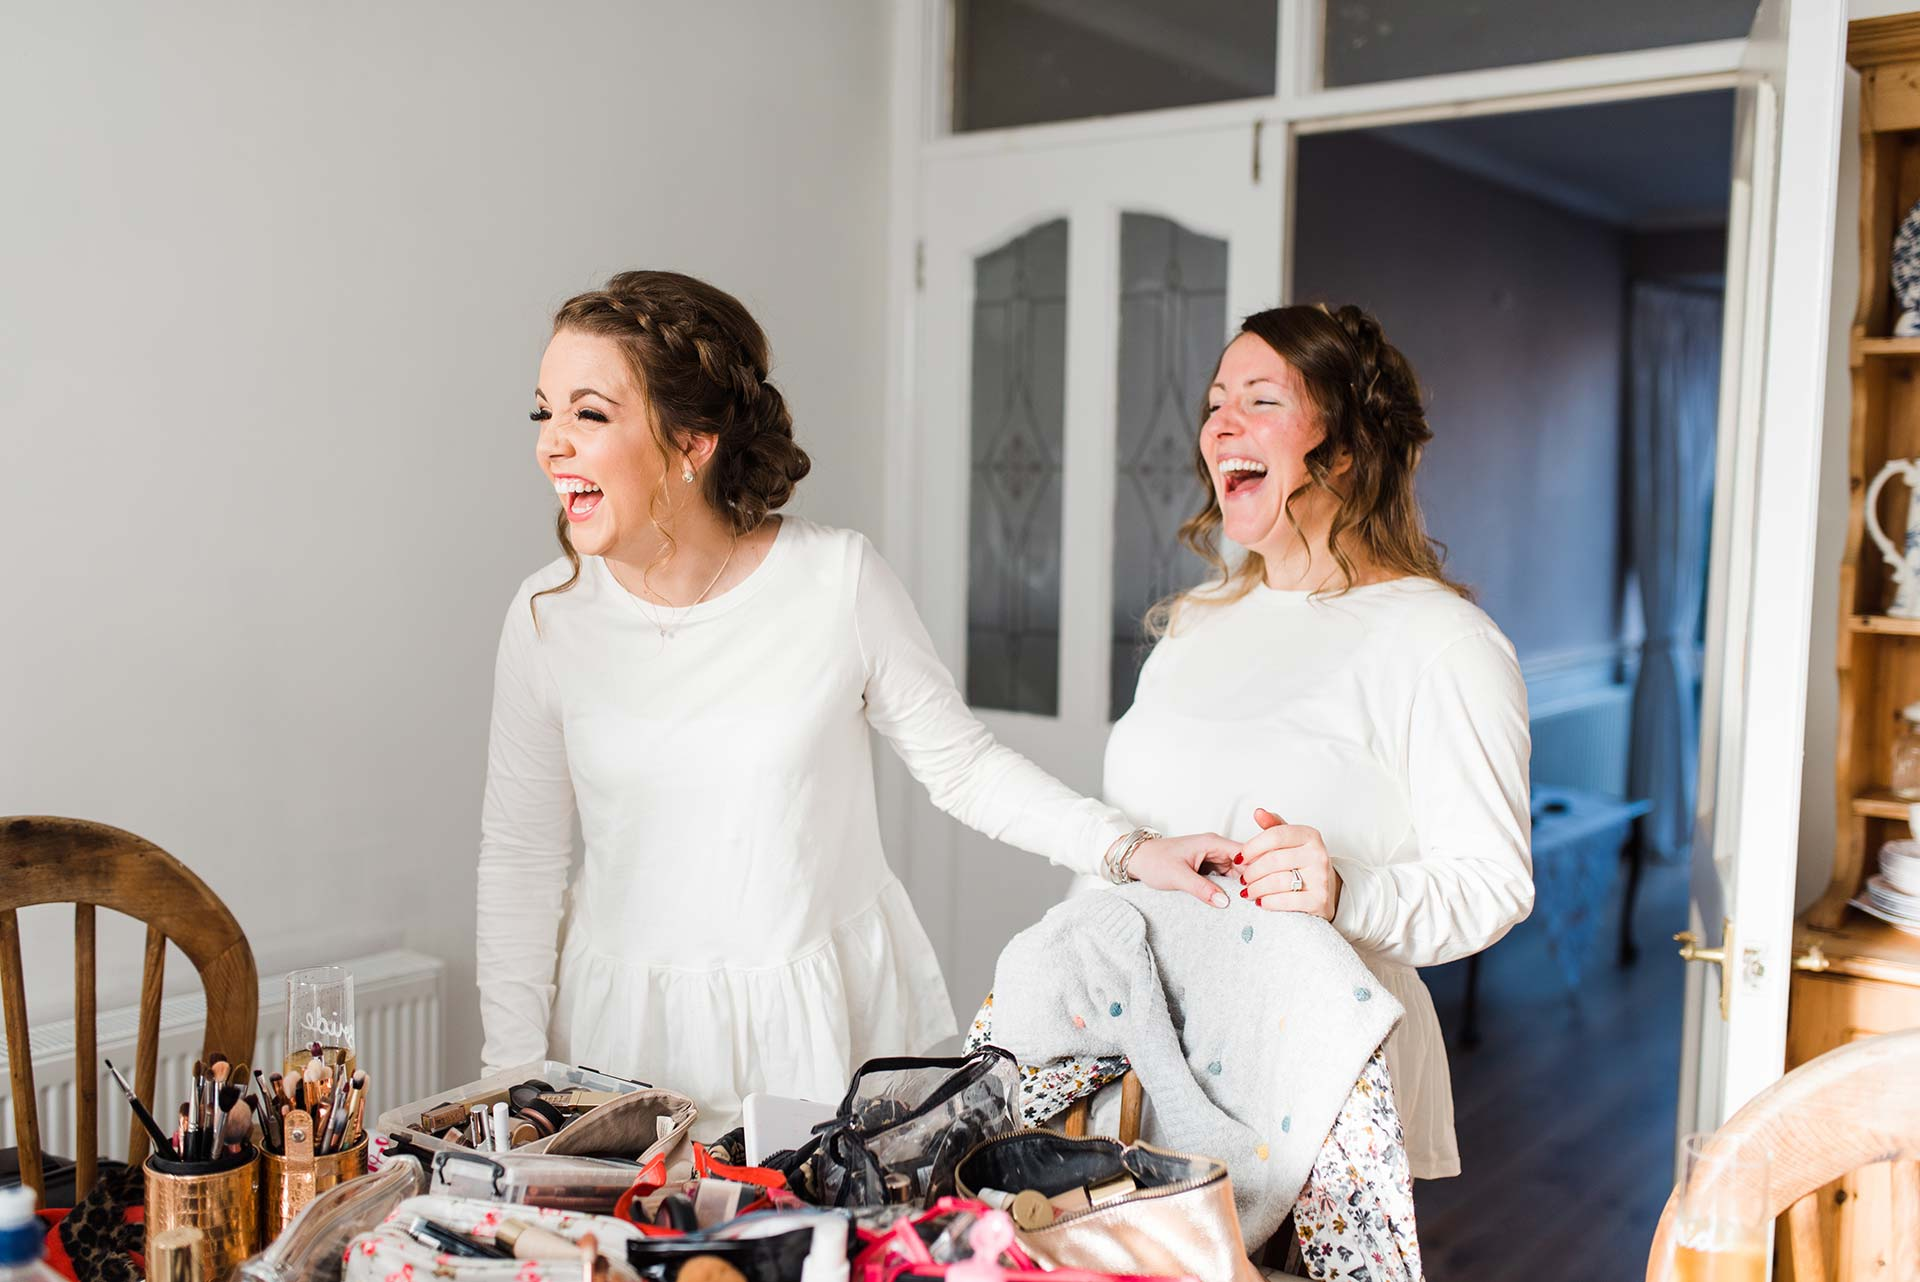 bridesmaids laugh while getting ready for wedding